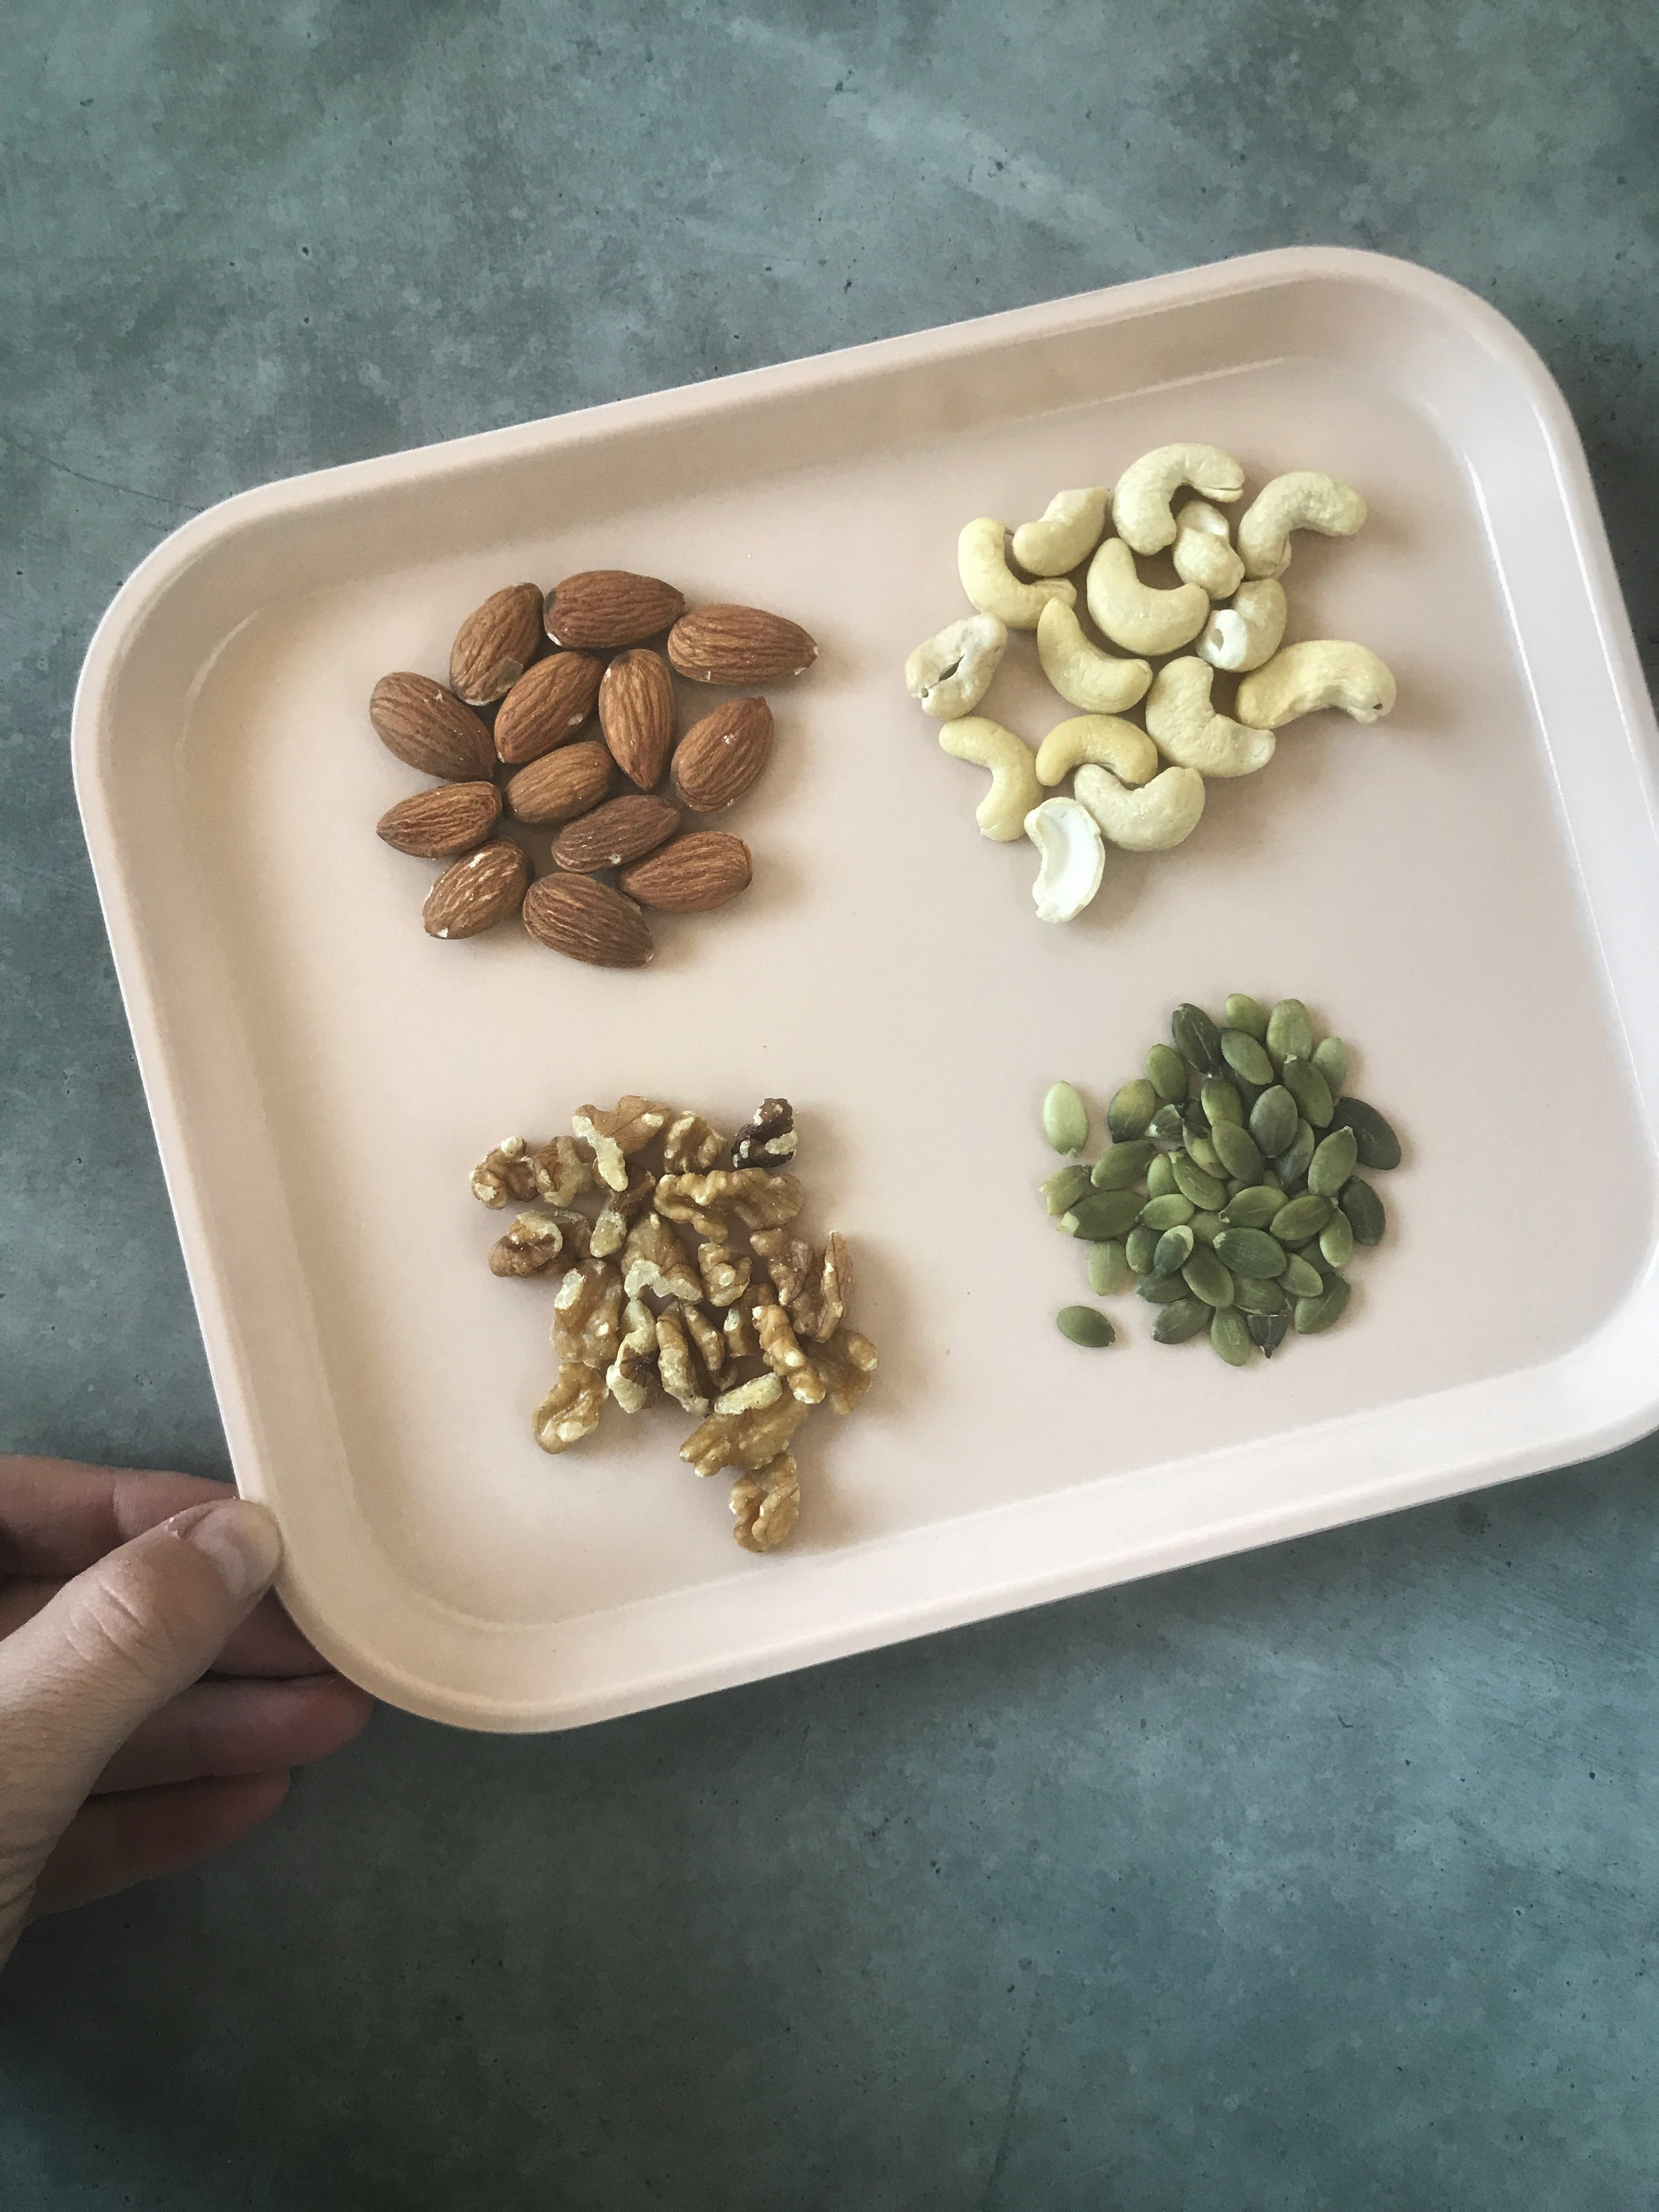 Ayurvedic nut nutrition